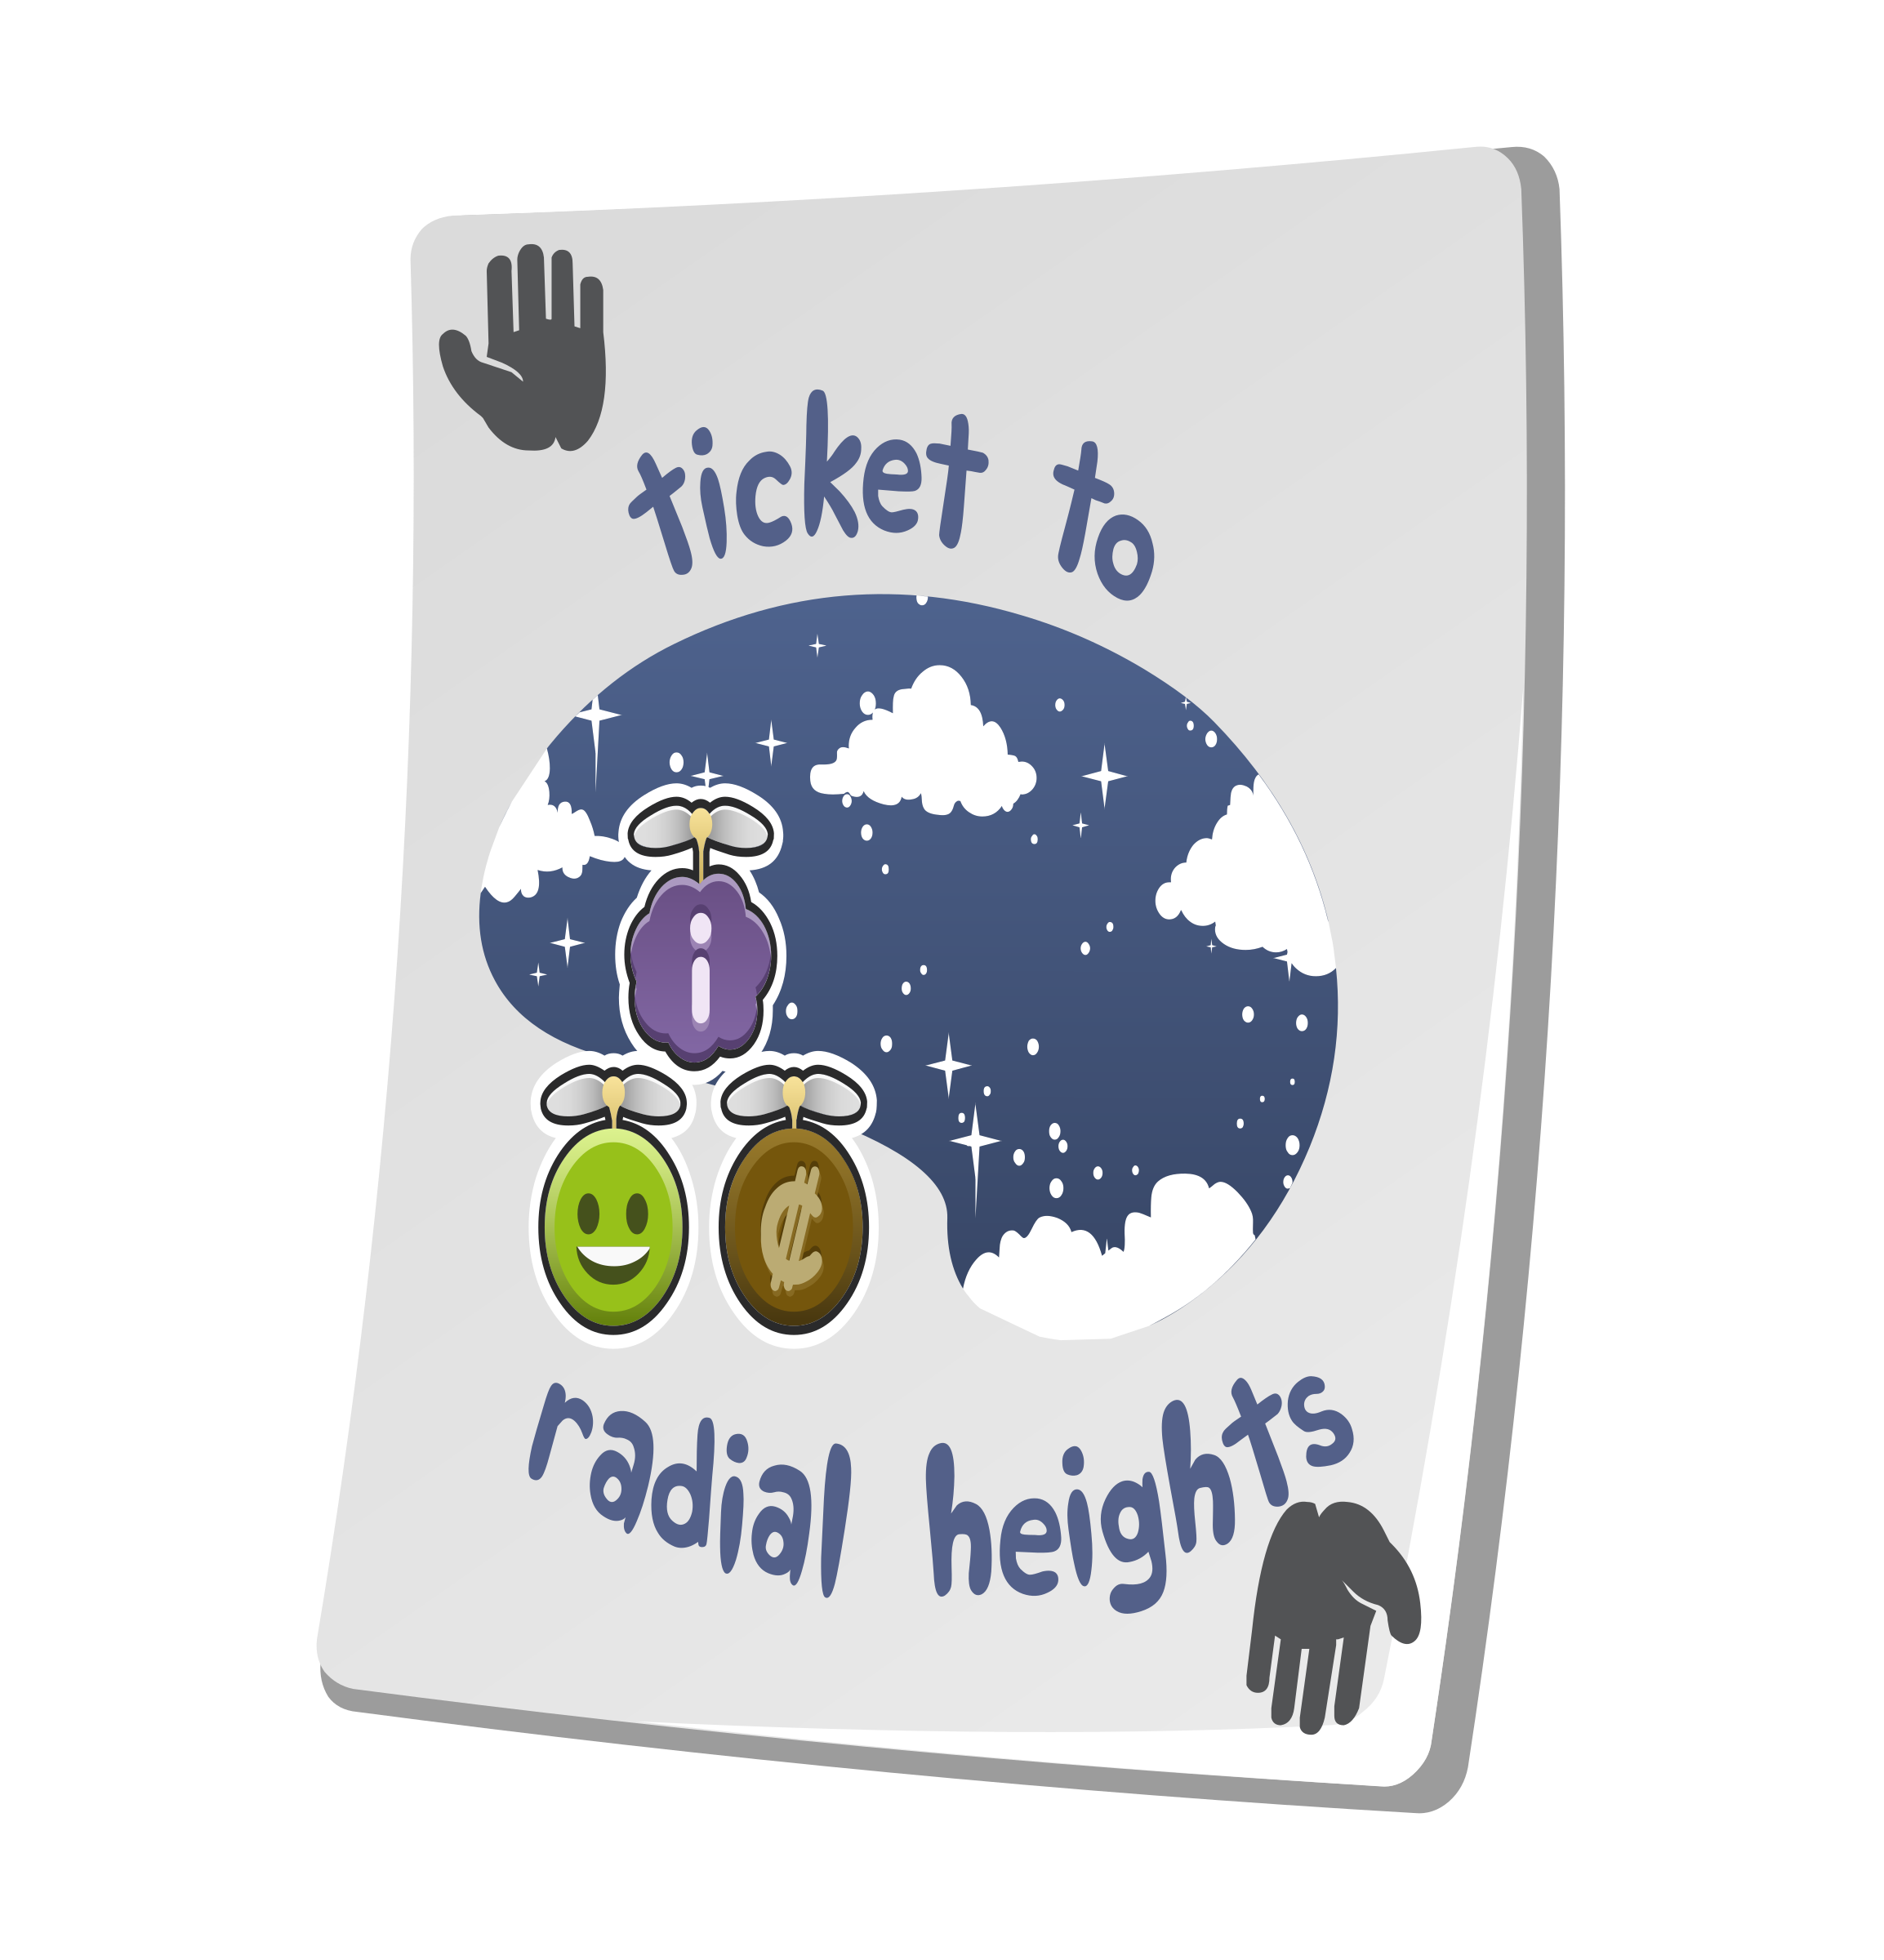 Misc Paradise Ticket Radial Heights by glitch